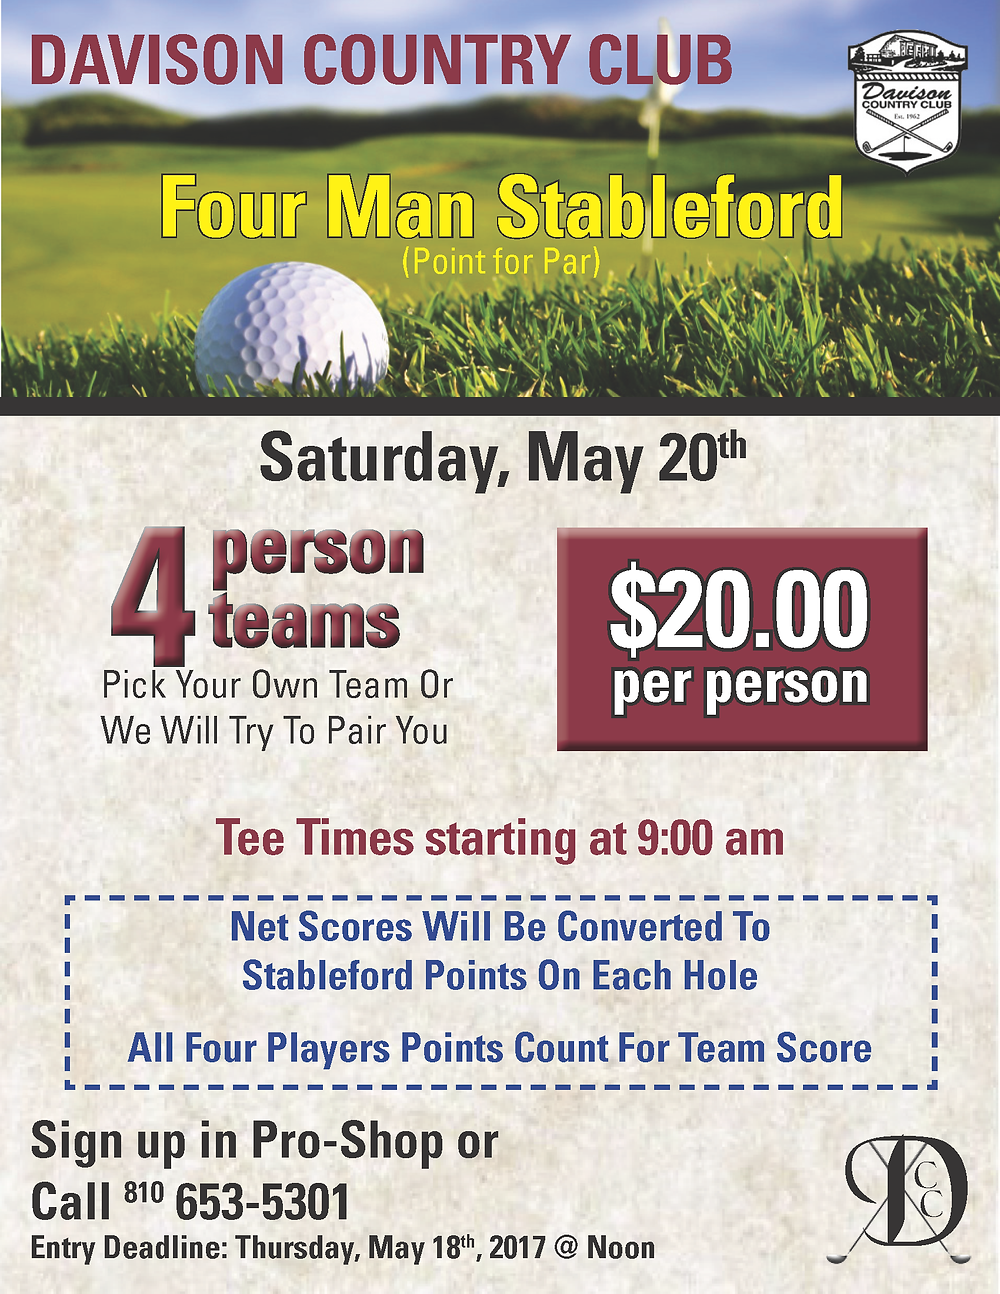 DCC Stableford Tourney